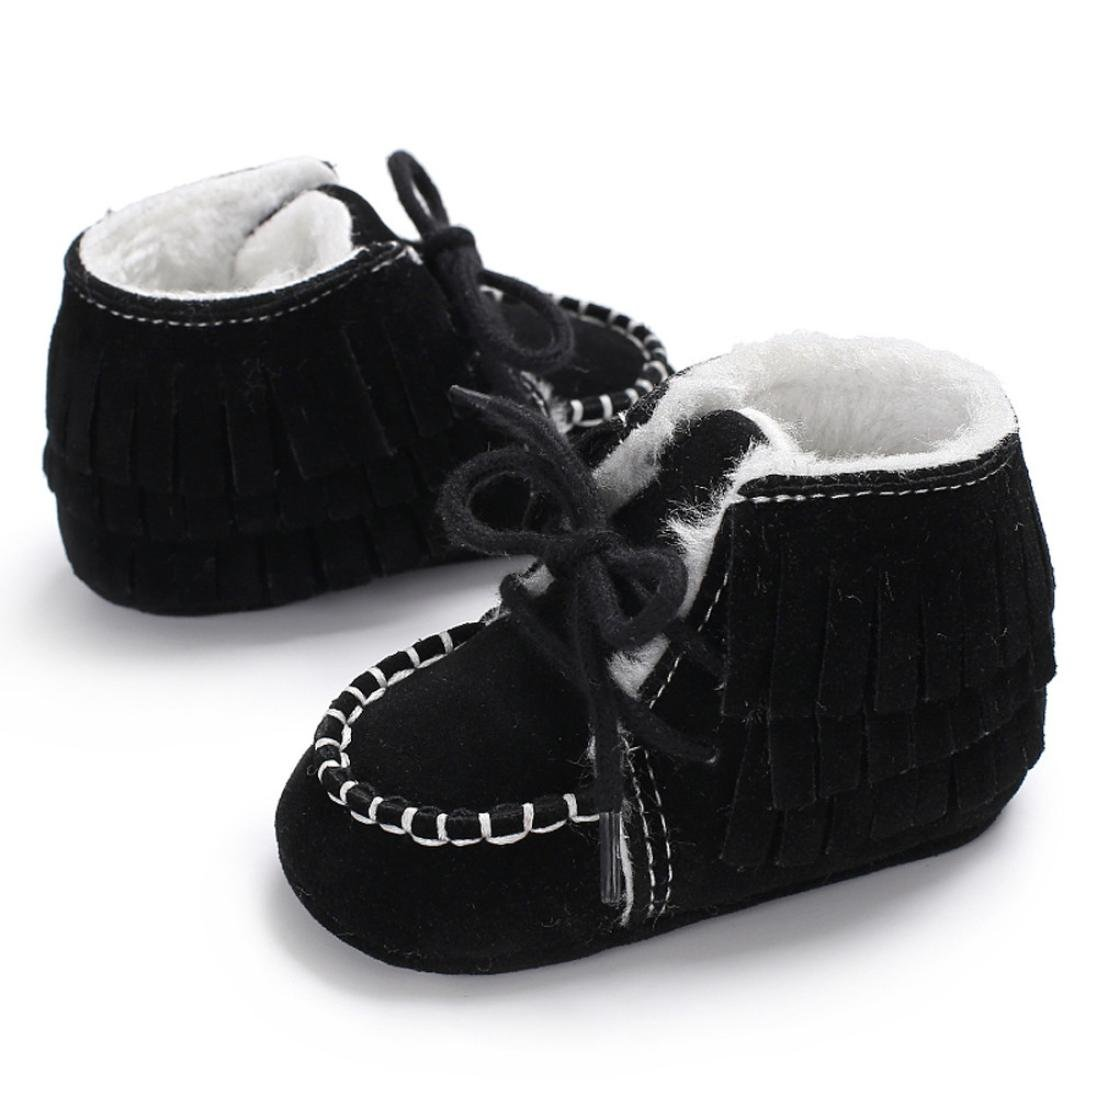 Snow Boots AMA TM Toddler Newborn Baby Soft Booties Warm Sole Crib Winter Shoes 0~6 Months, Black